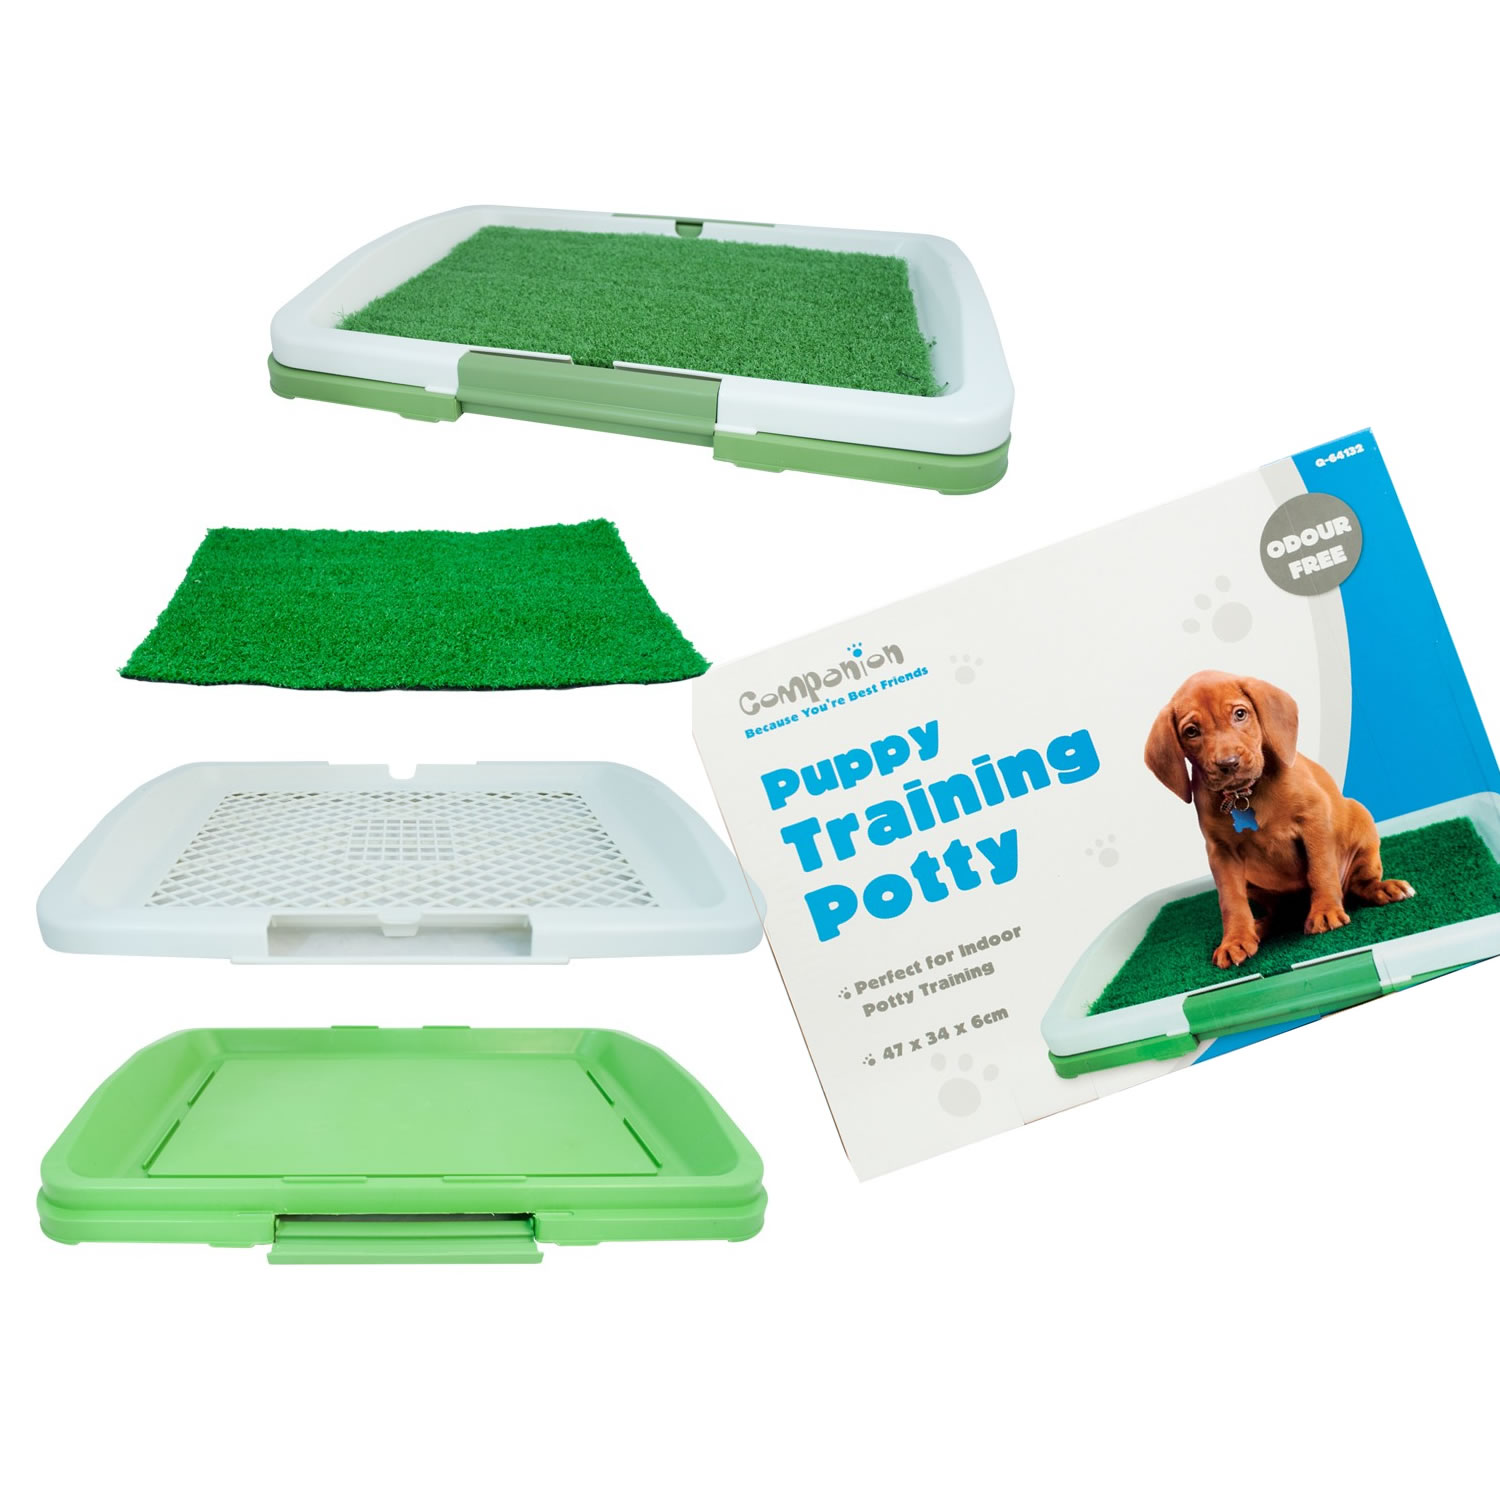 Dog Trainer For Potty Training